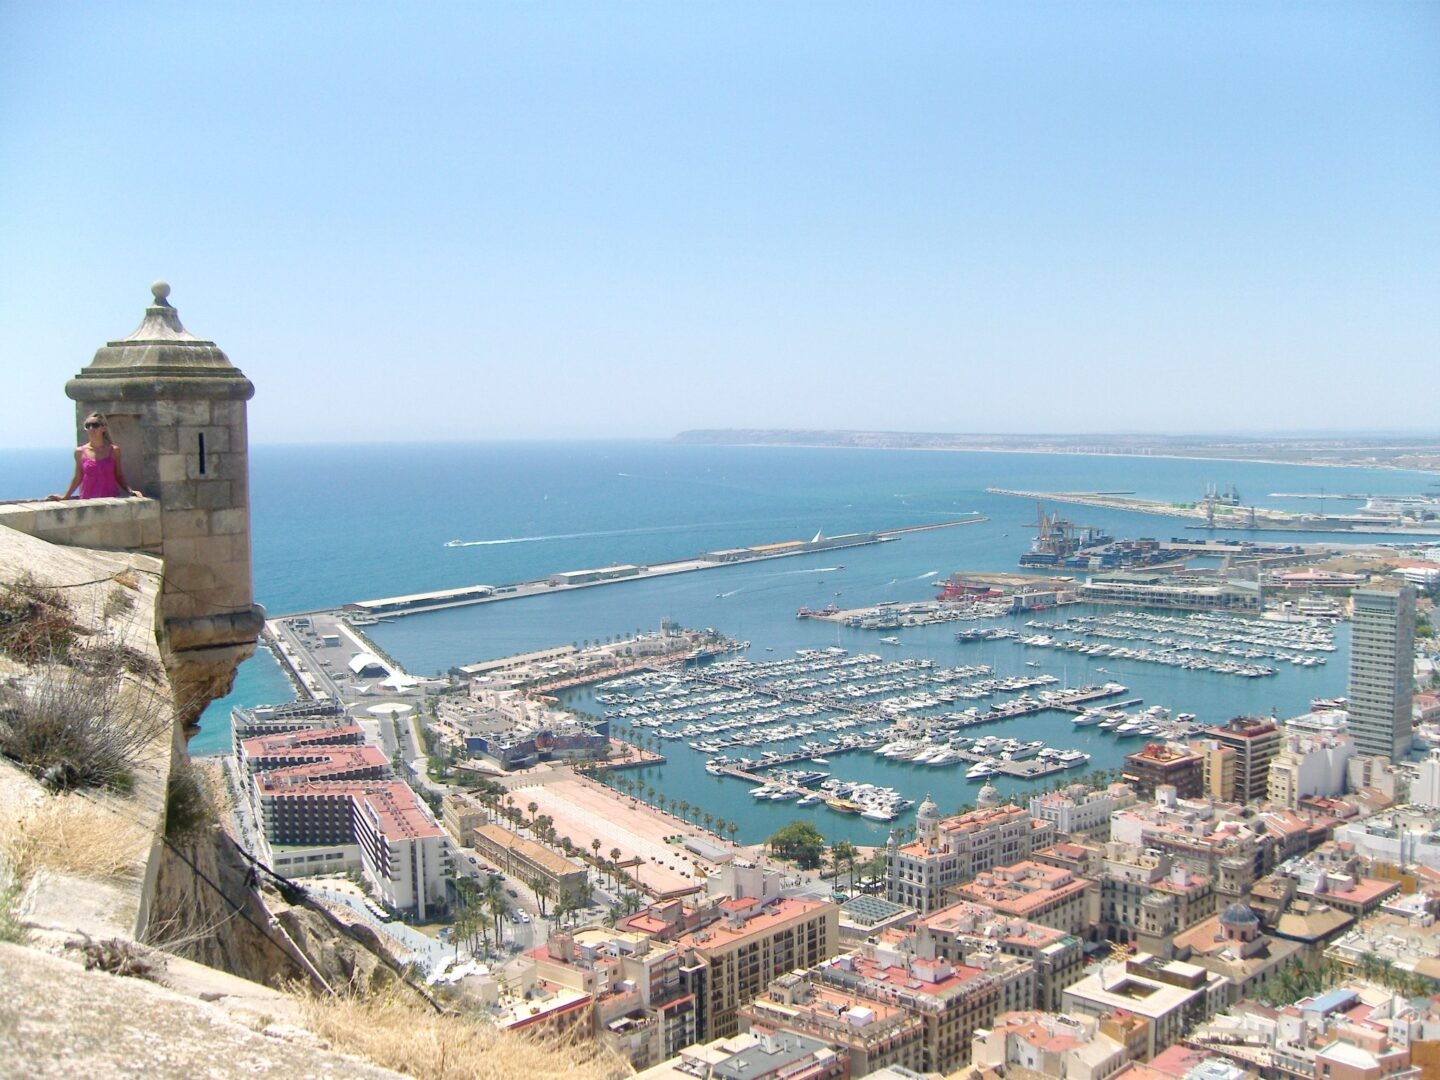 Spain: Alicante, An Amazing Getaway Destination